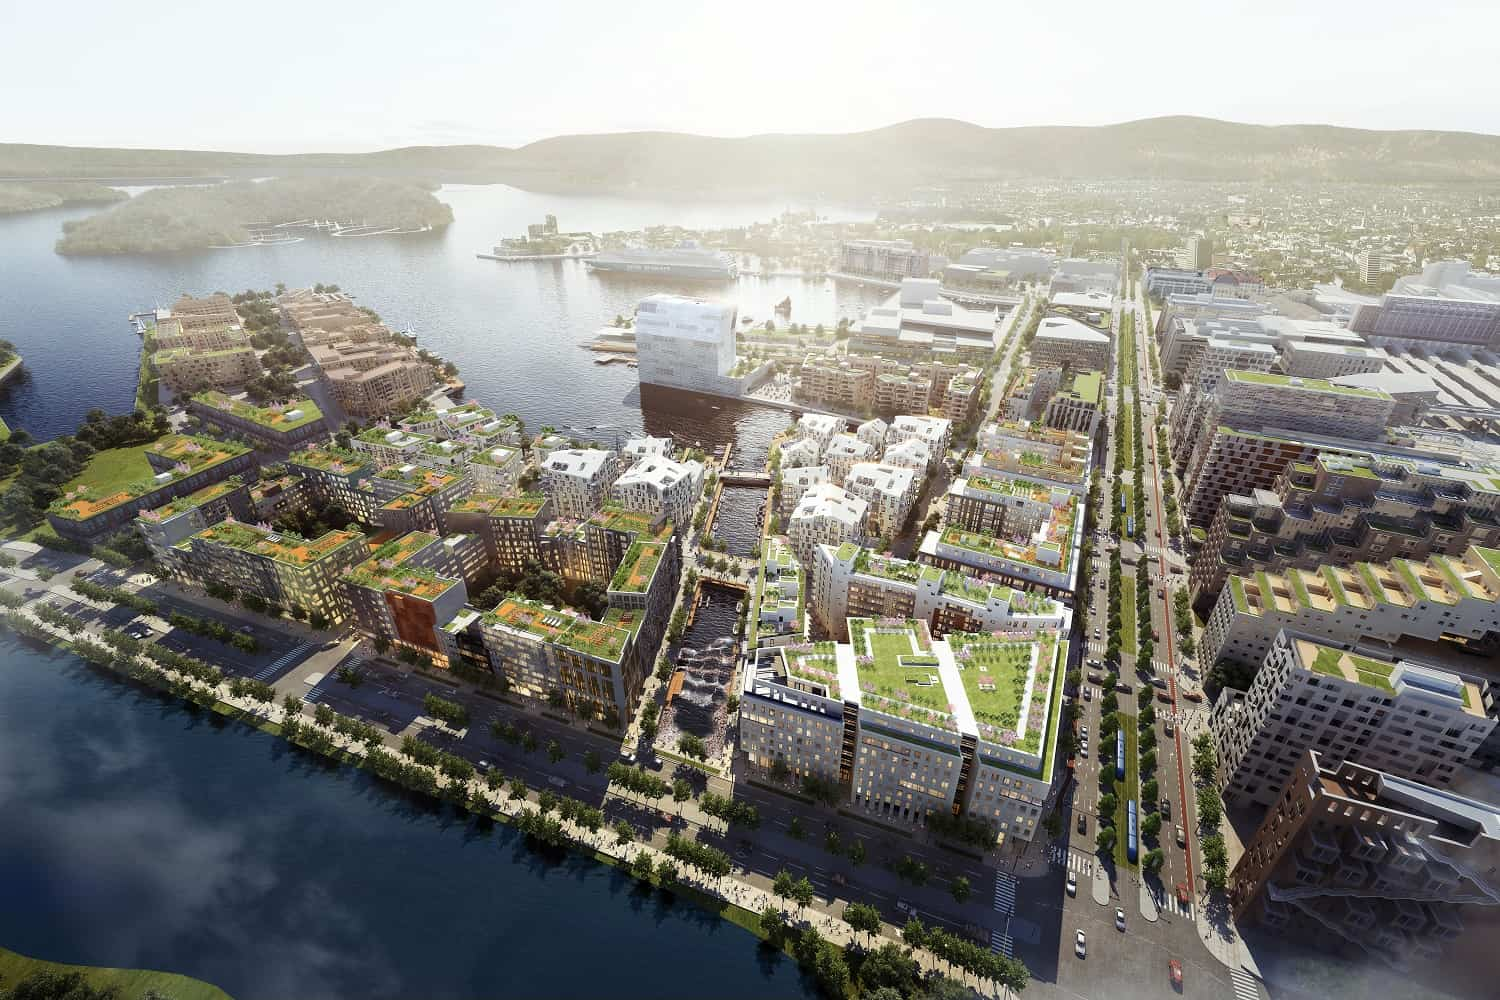 Leonard Design project - Oslo Bispevika - regeneration